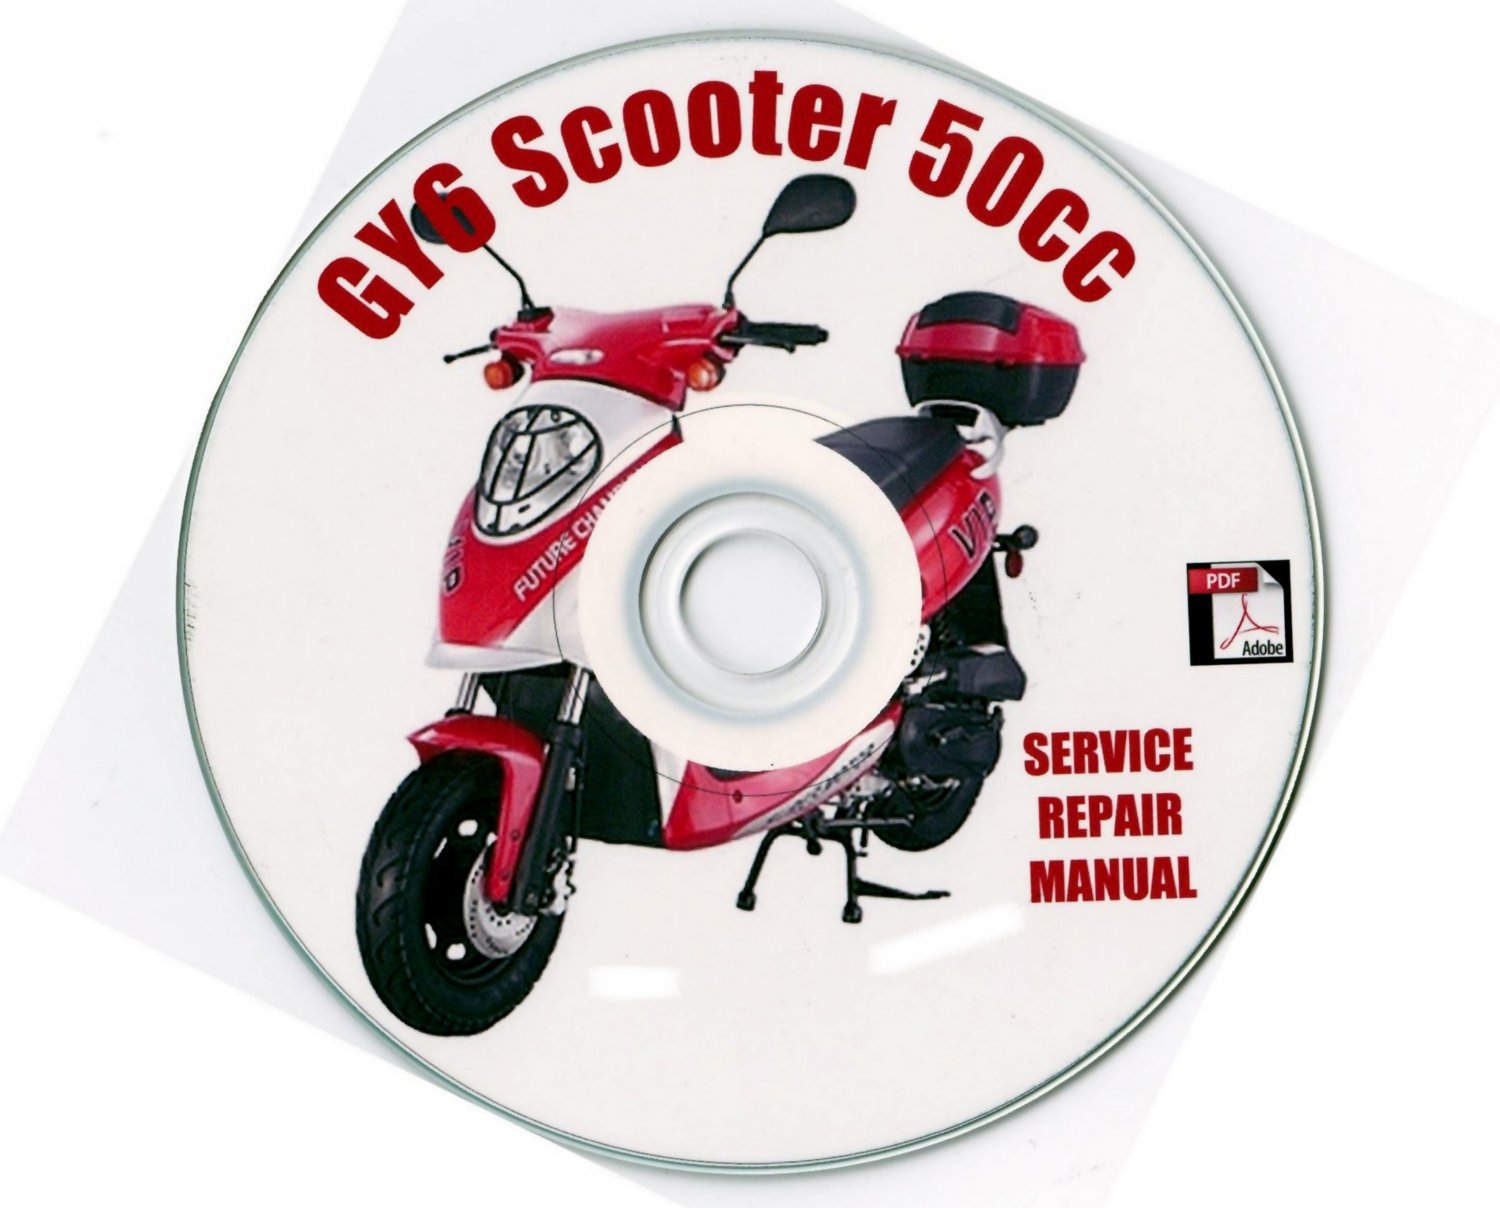 GY6 50cc Scooter Service Repair Manual Rebuild Fix Chinese JM STAR Xingyue Flyscooters e-GO Motors